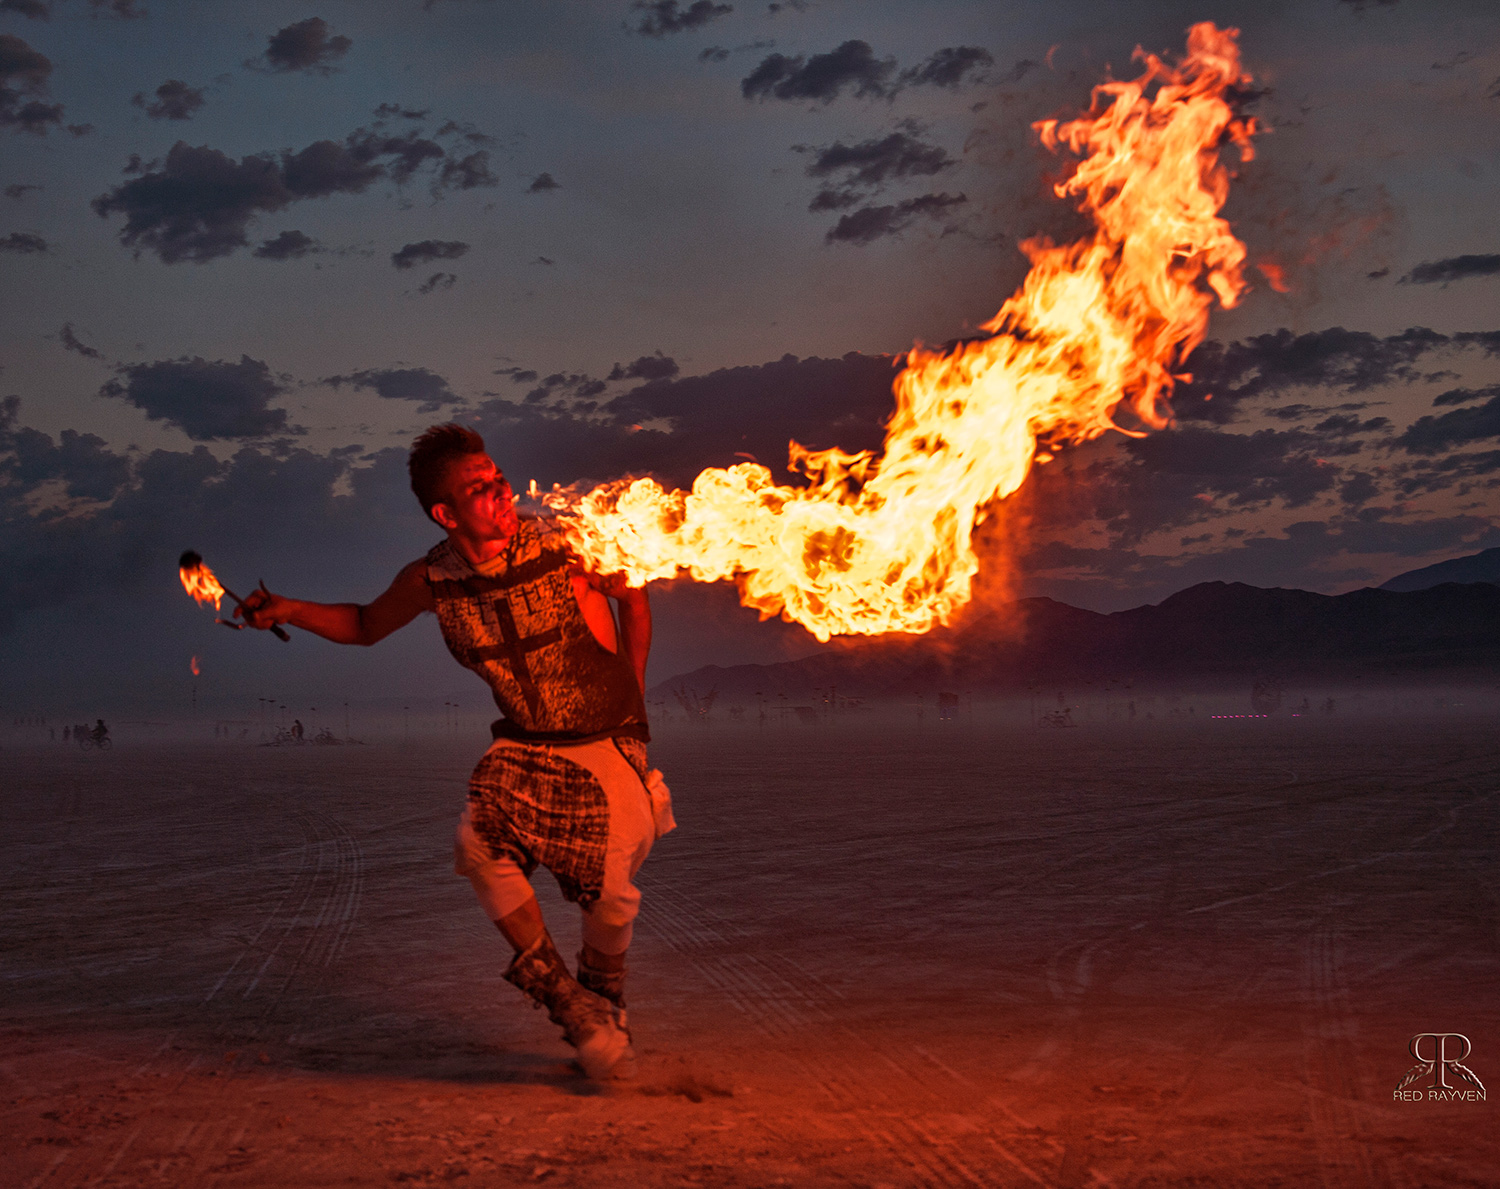 A man uses fire for art at Burning Man